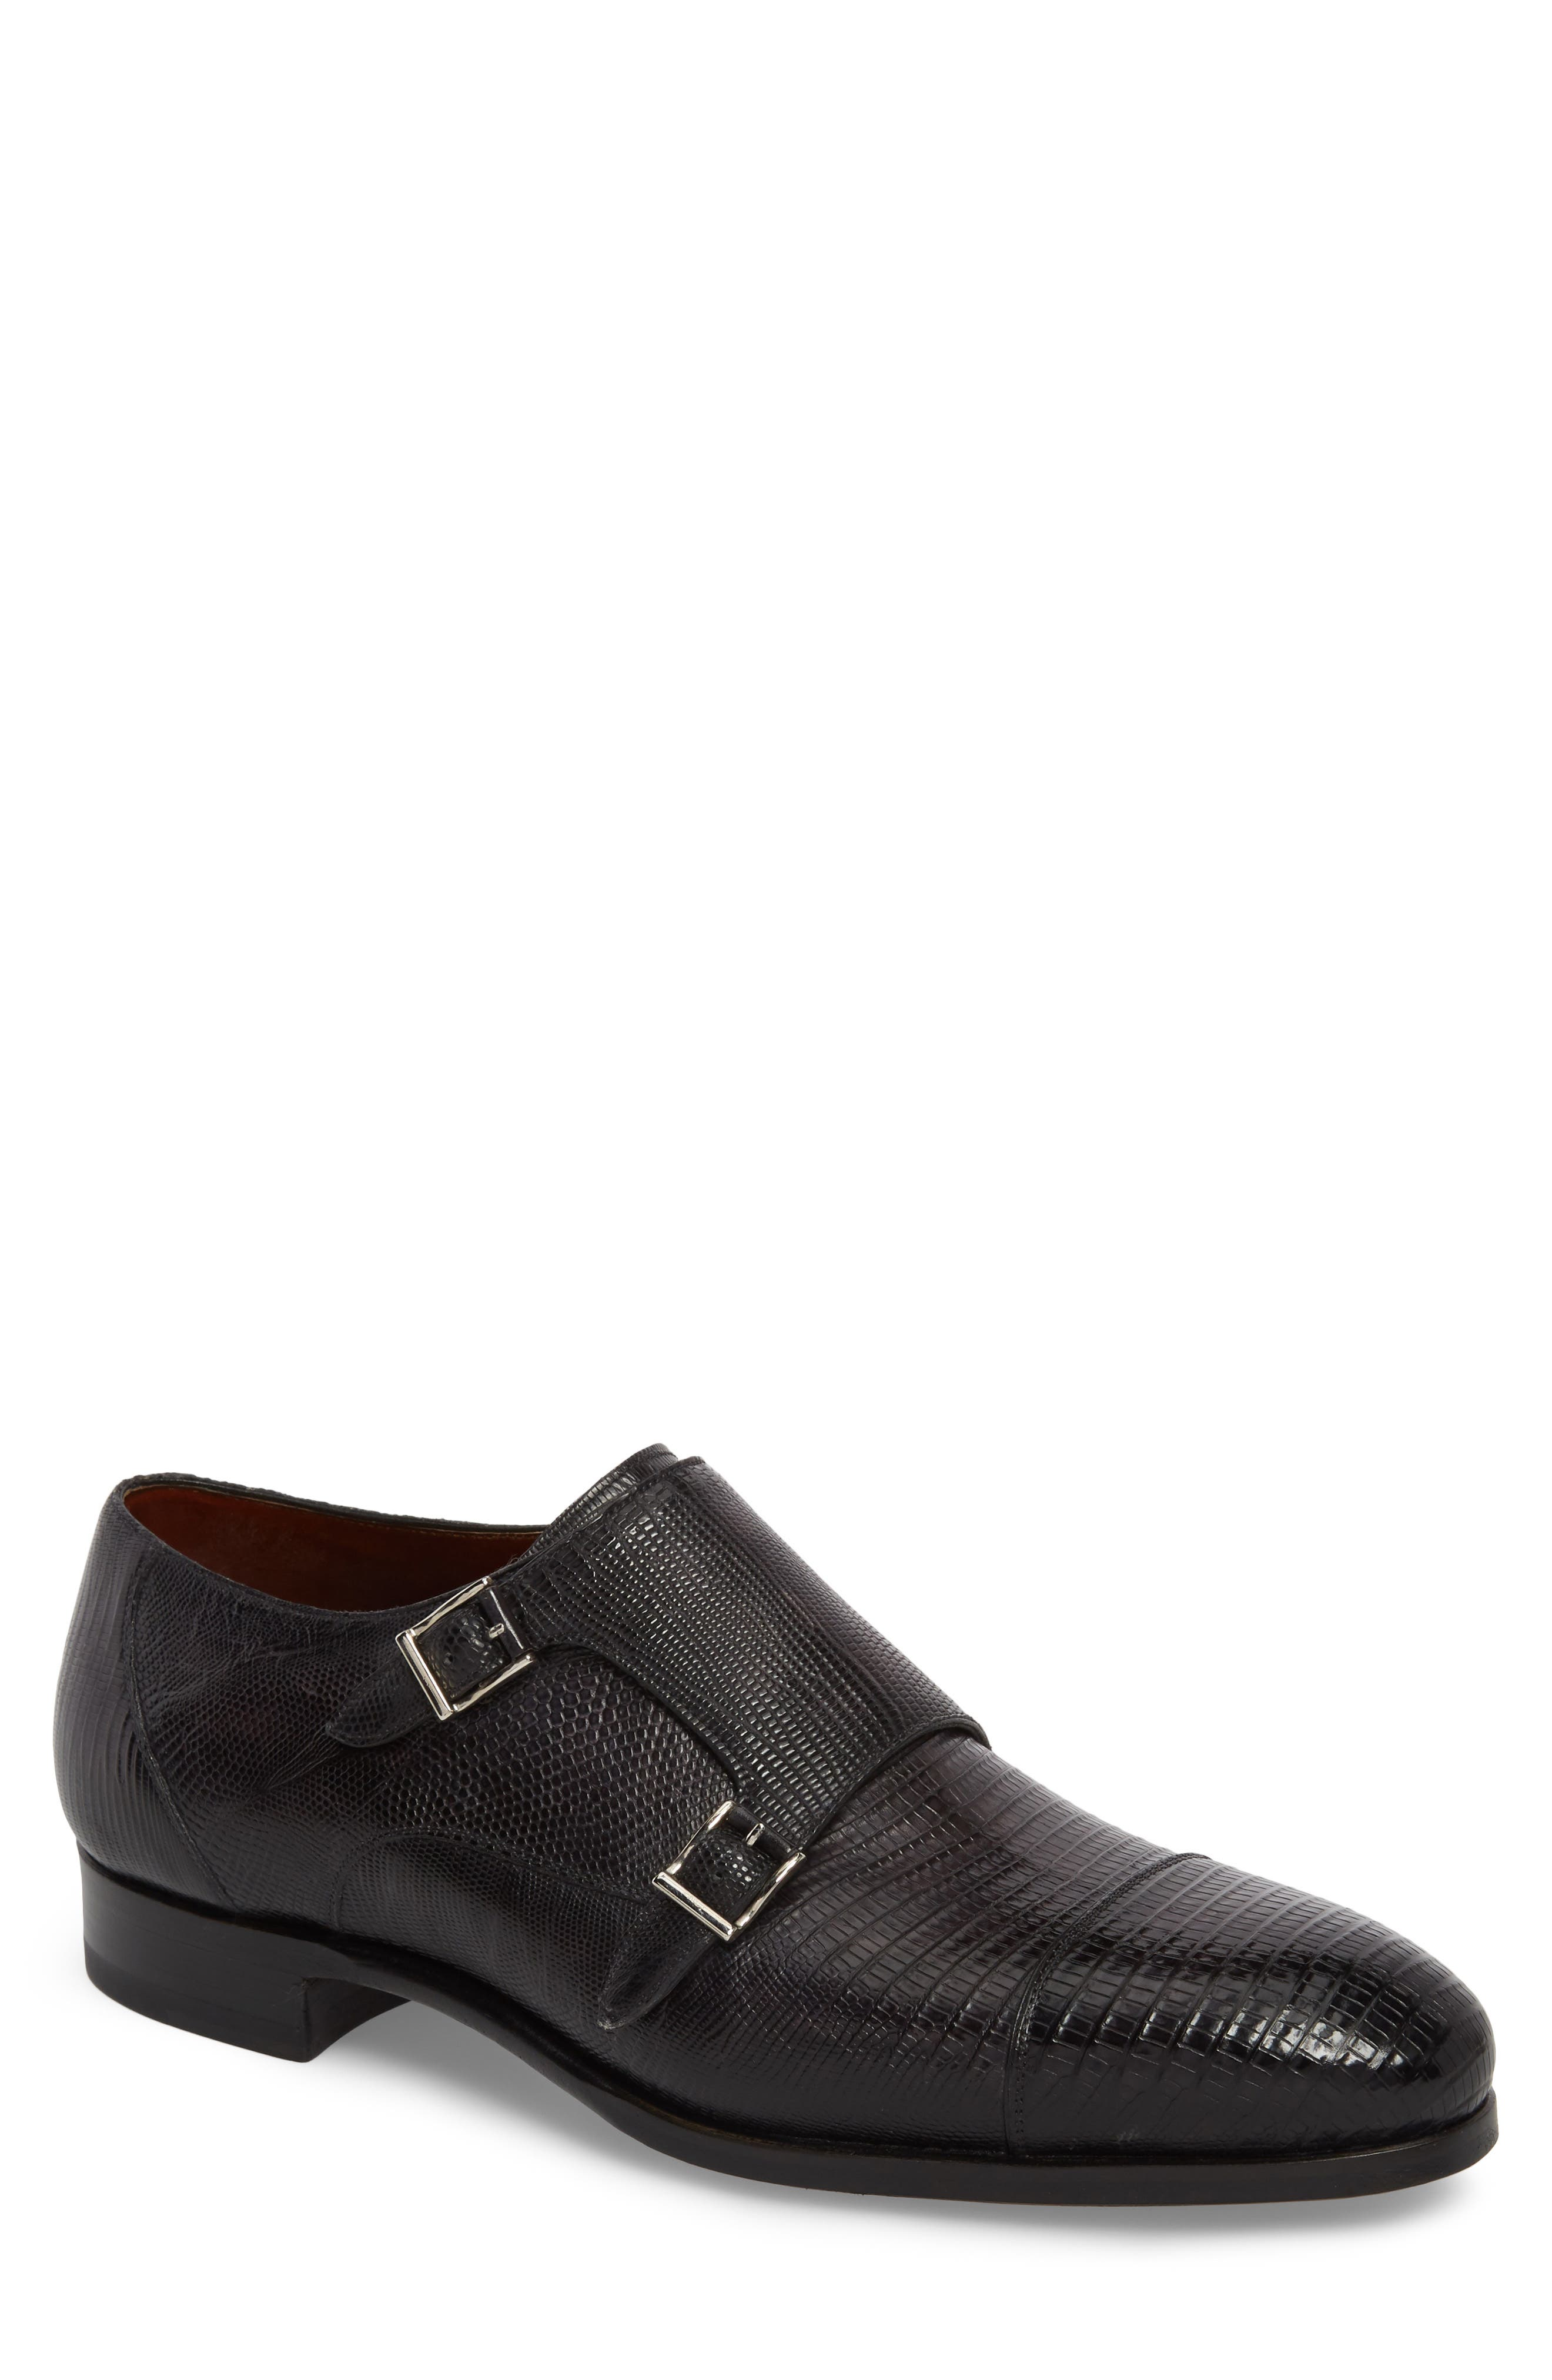 Pavo Lizard Leather Monk Shoe,                         Main,                         color, Grey Leather